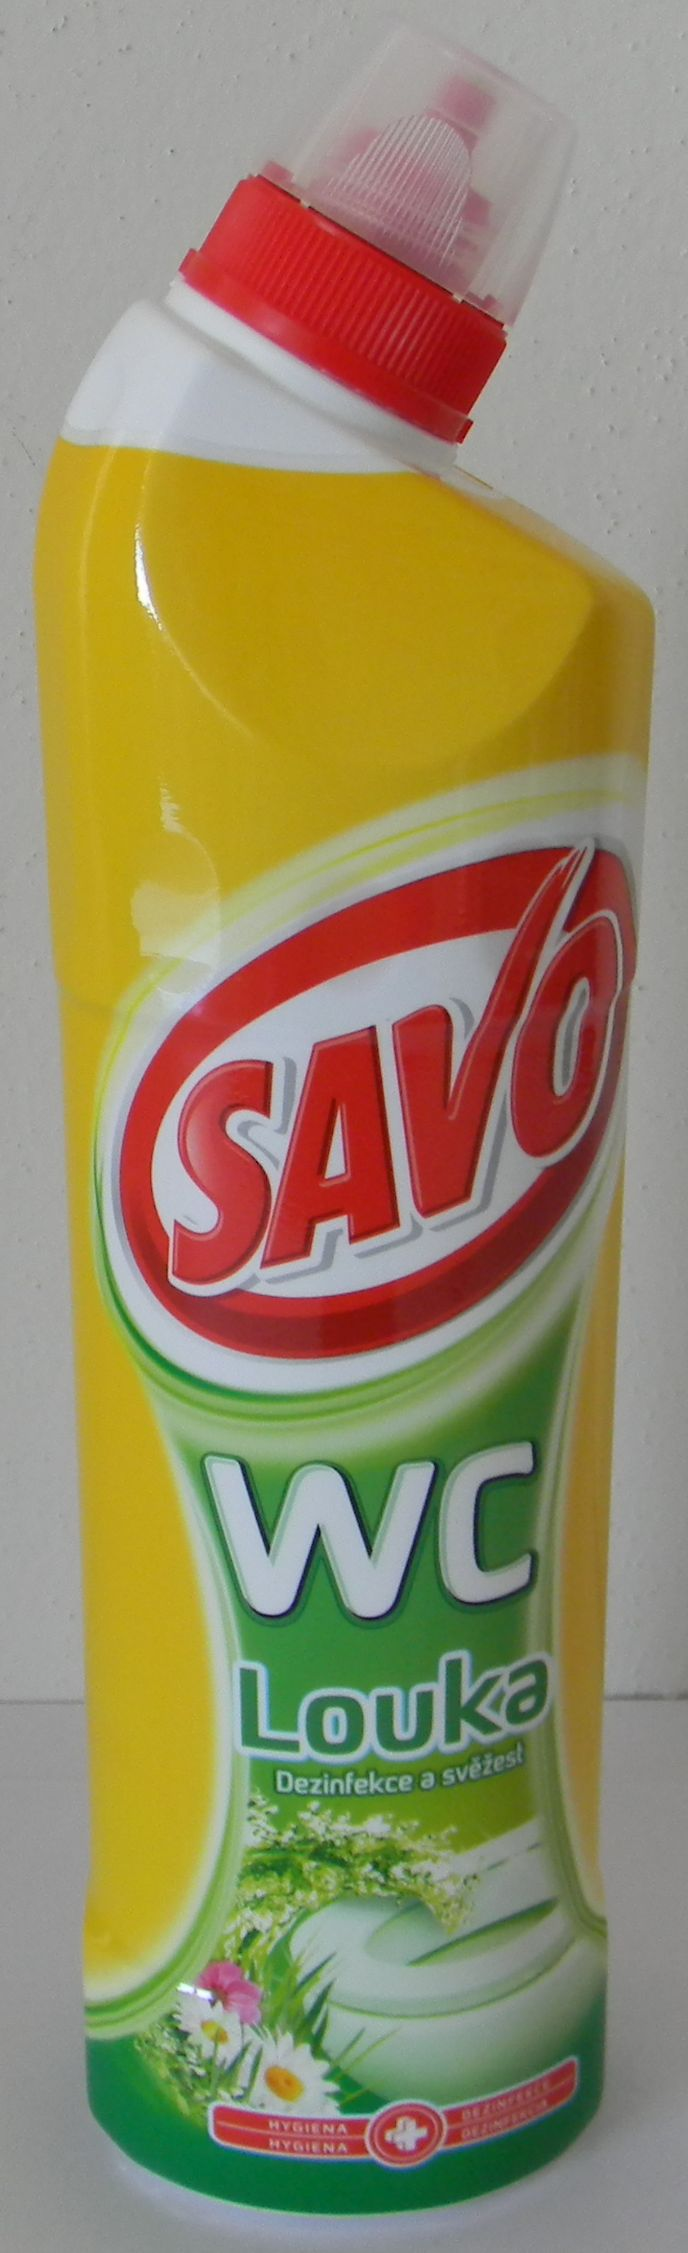 Savo na WC 750 ml louka -